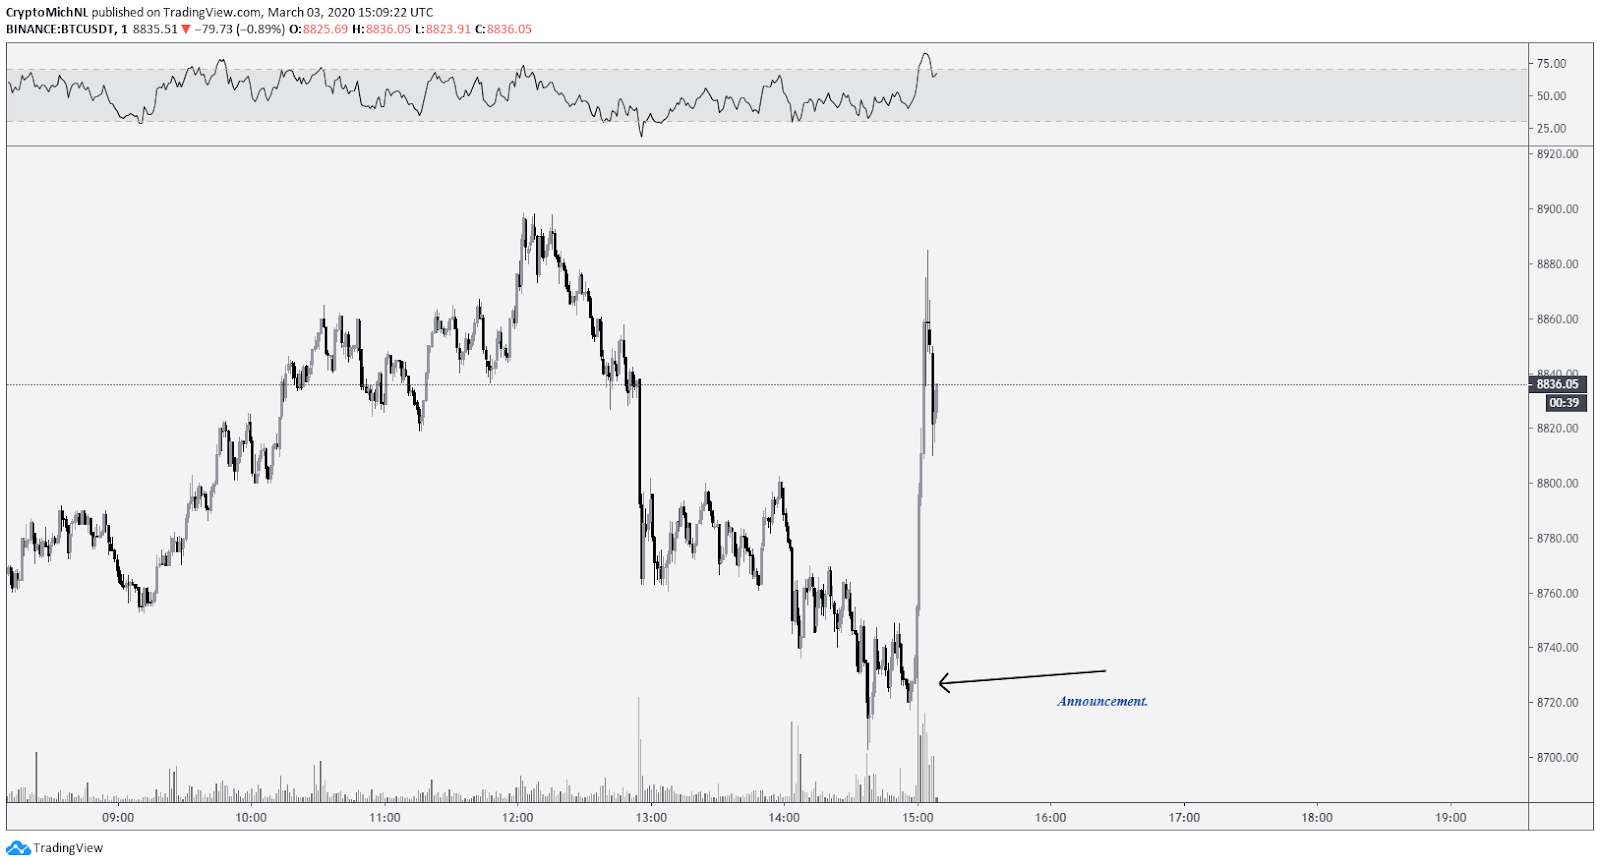 BTC USDT 1-minute chart. Source: TradingView